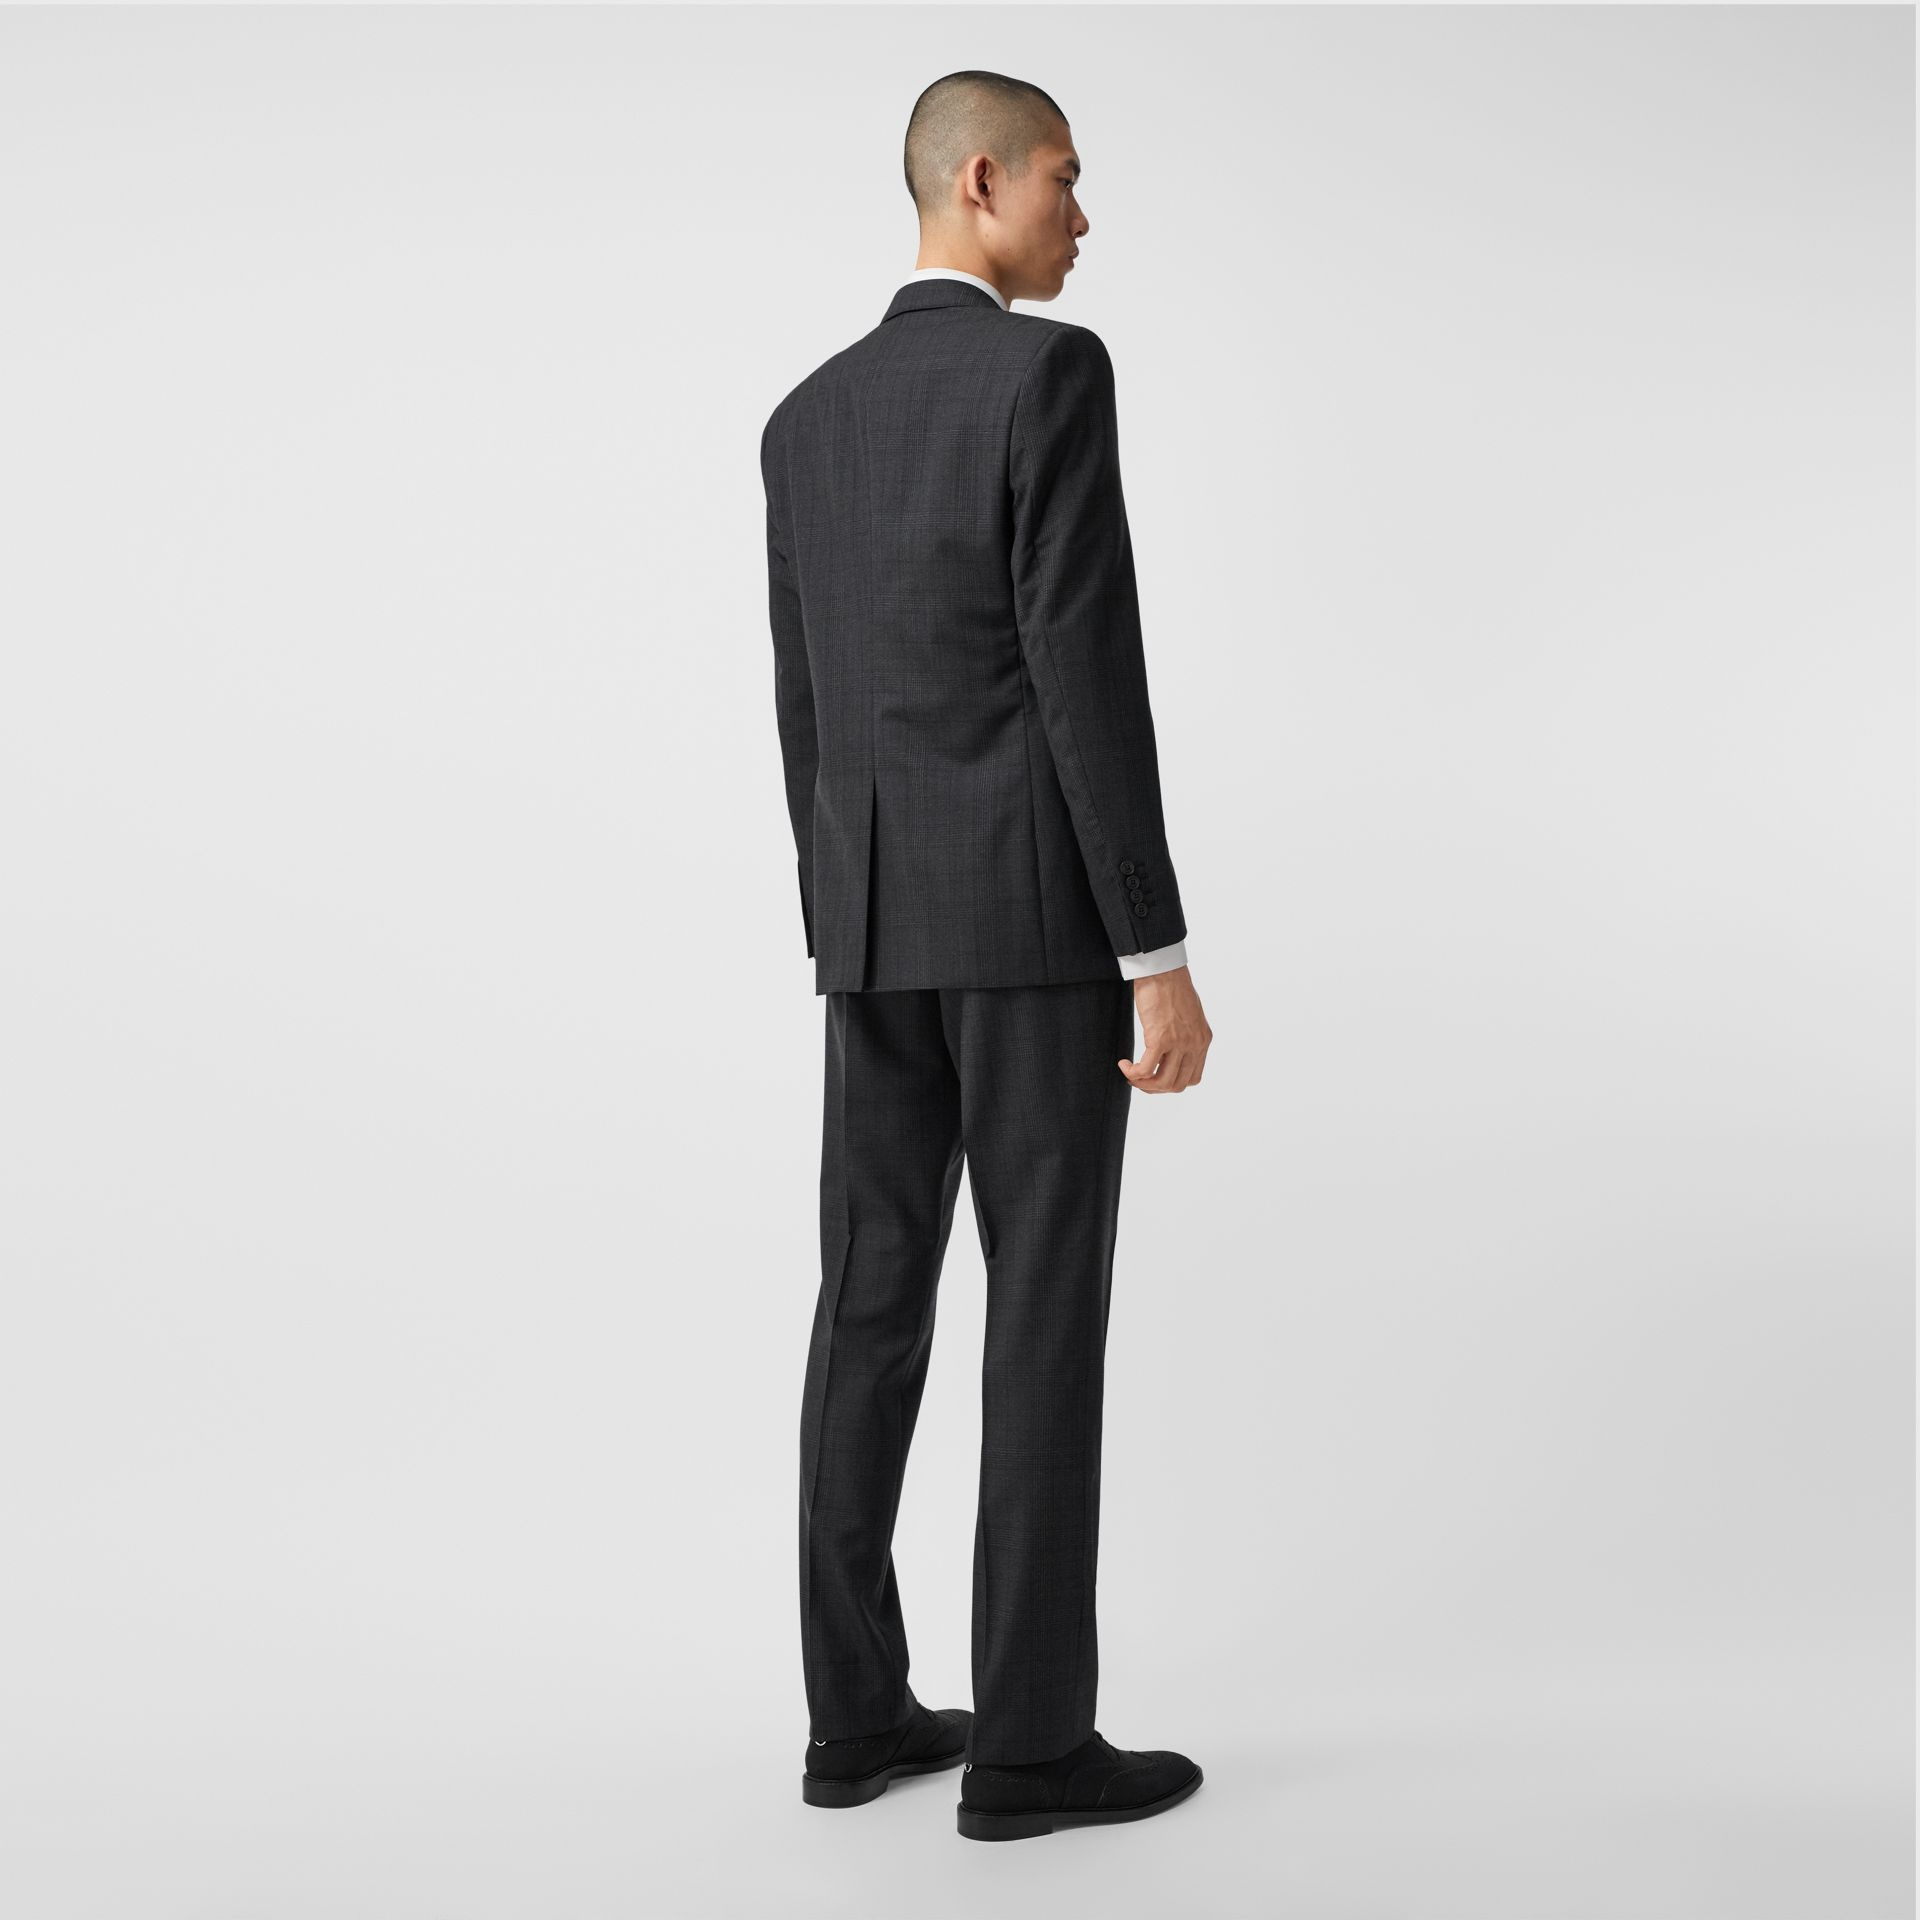 Classic Fit Check Wool Three-piece Suit in Charcoal Melange - Men | Burberry - gallery image 2